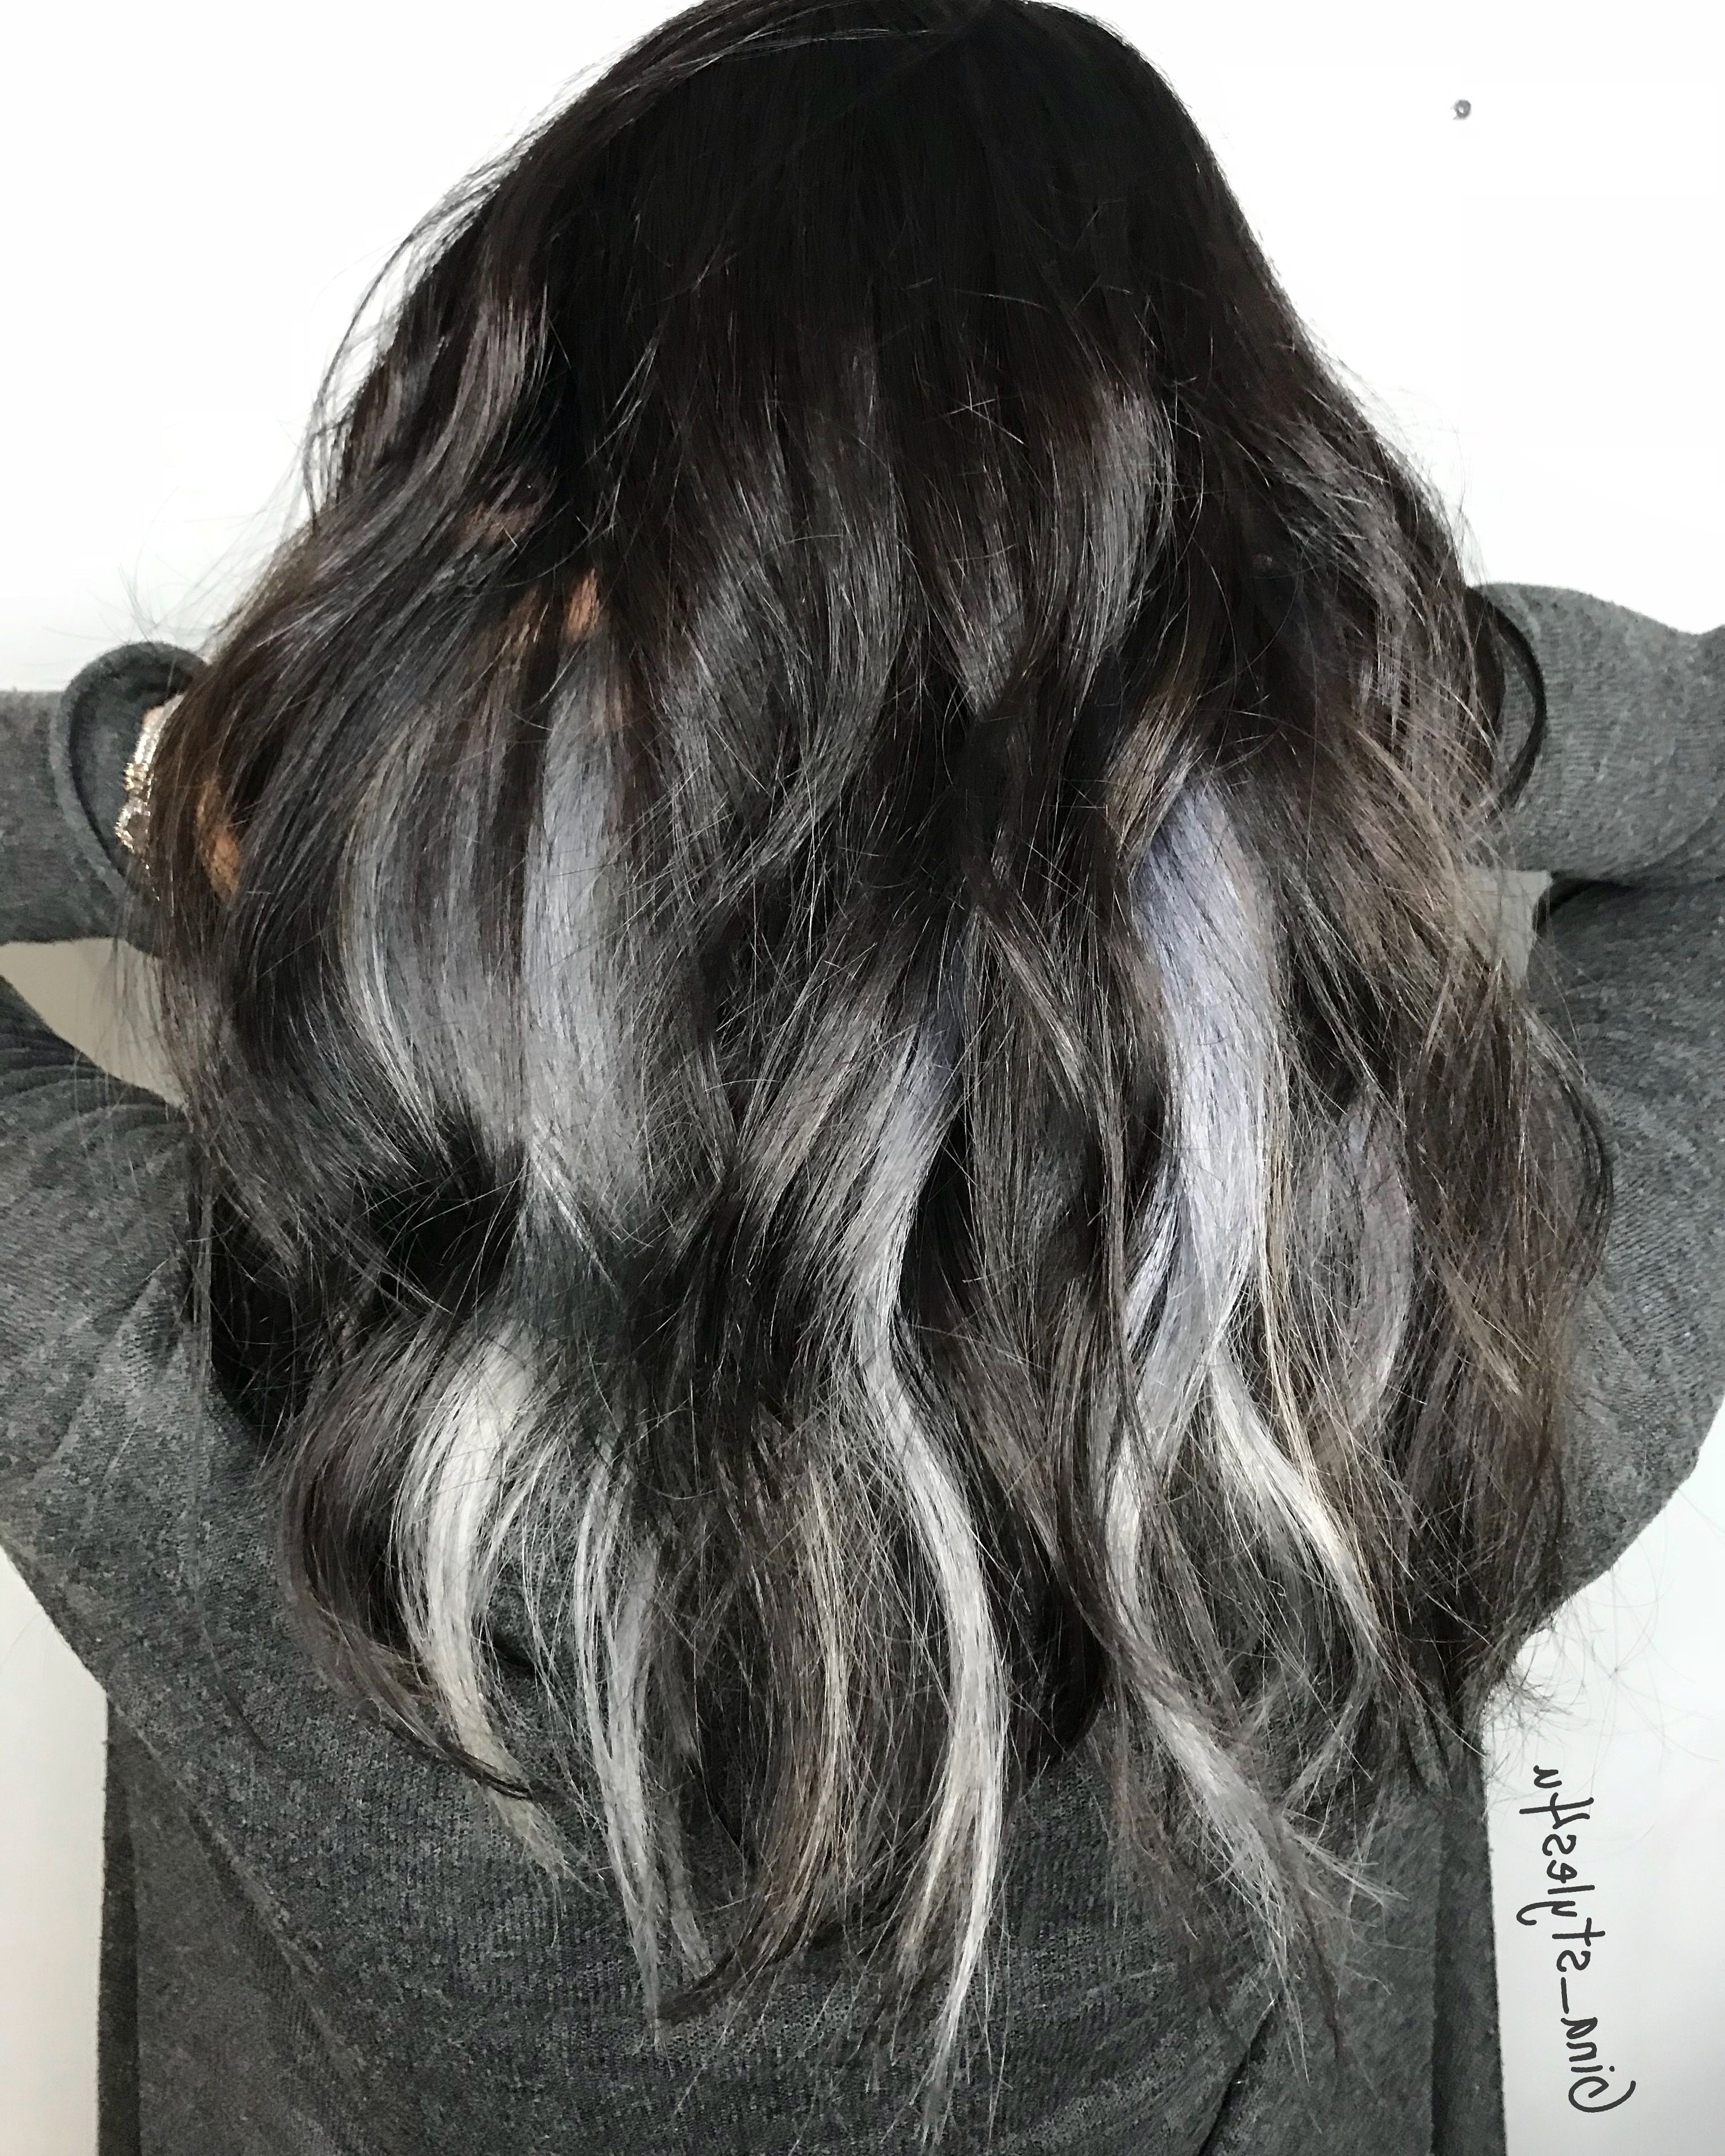 Silver Grey Hair Peekaboo Highlights | Hairdos I Did In 2018 Pertaining To Silver And Sophisticated Hairstyles (Gallery 11 of 20)